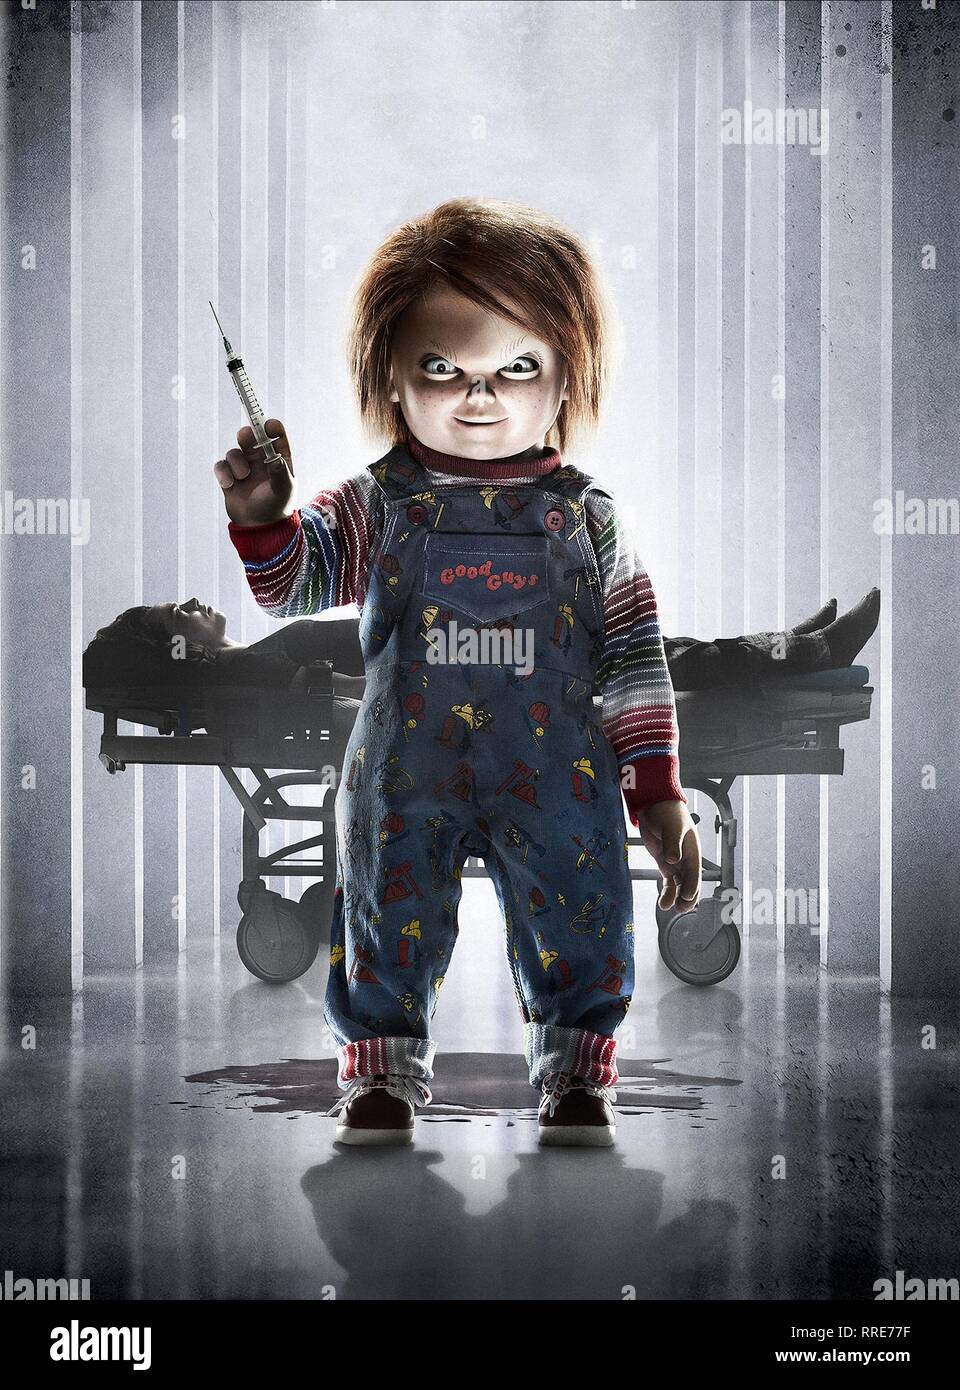 CULT OF CHUCKY, CHUCKY, 2017 - Stock Image